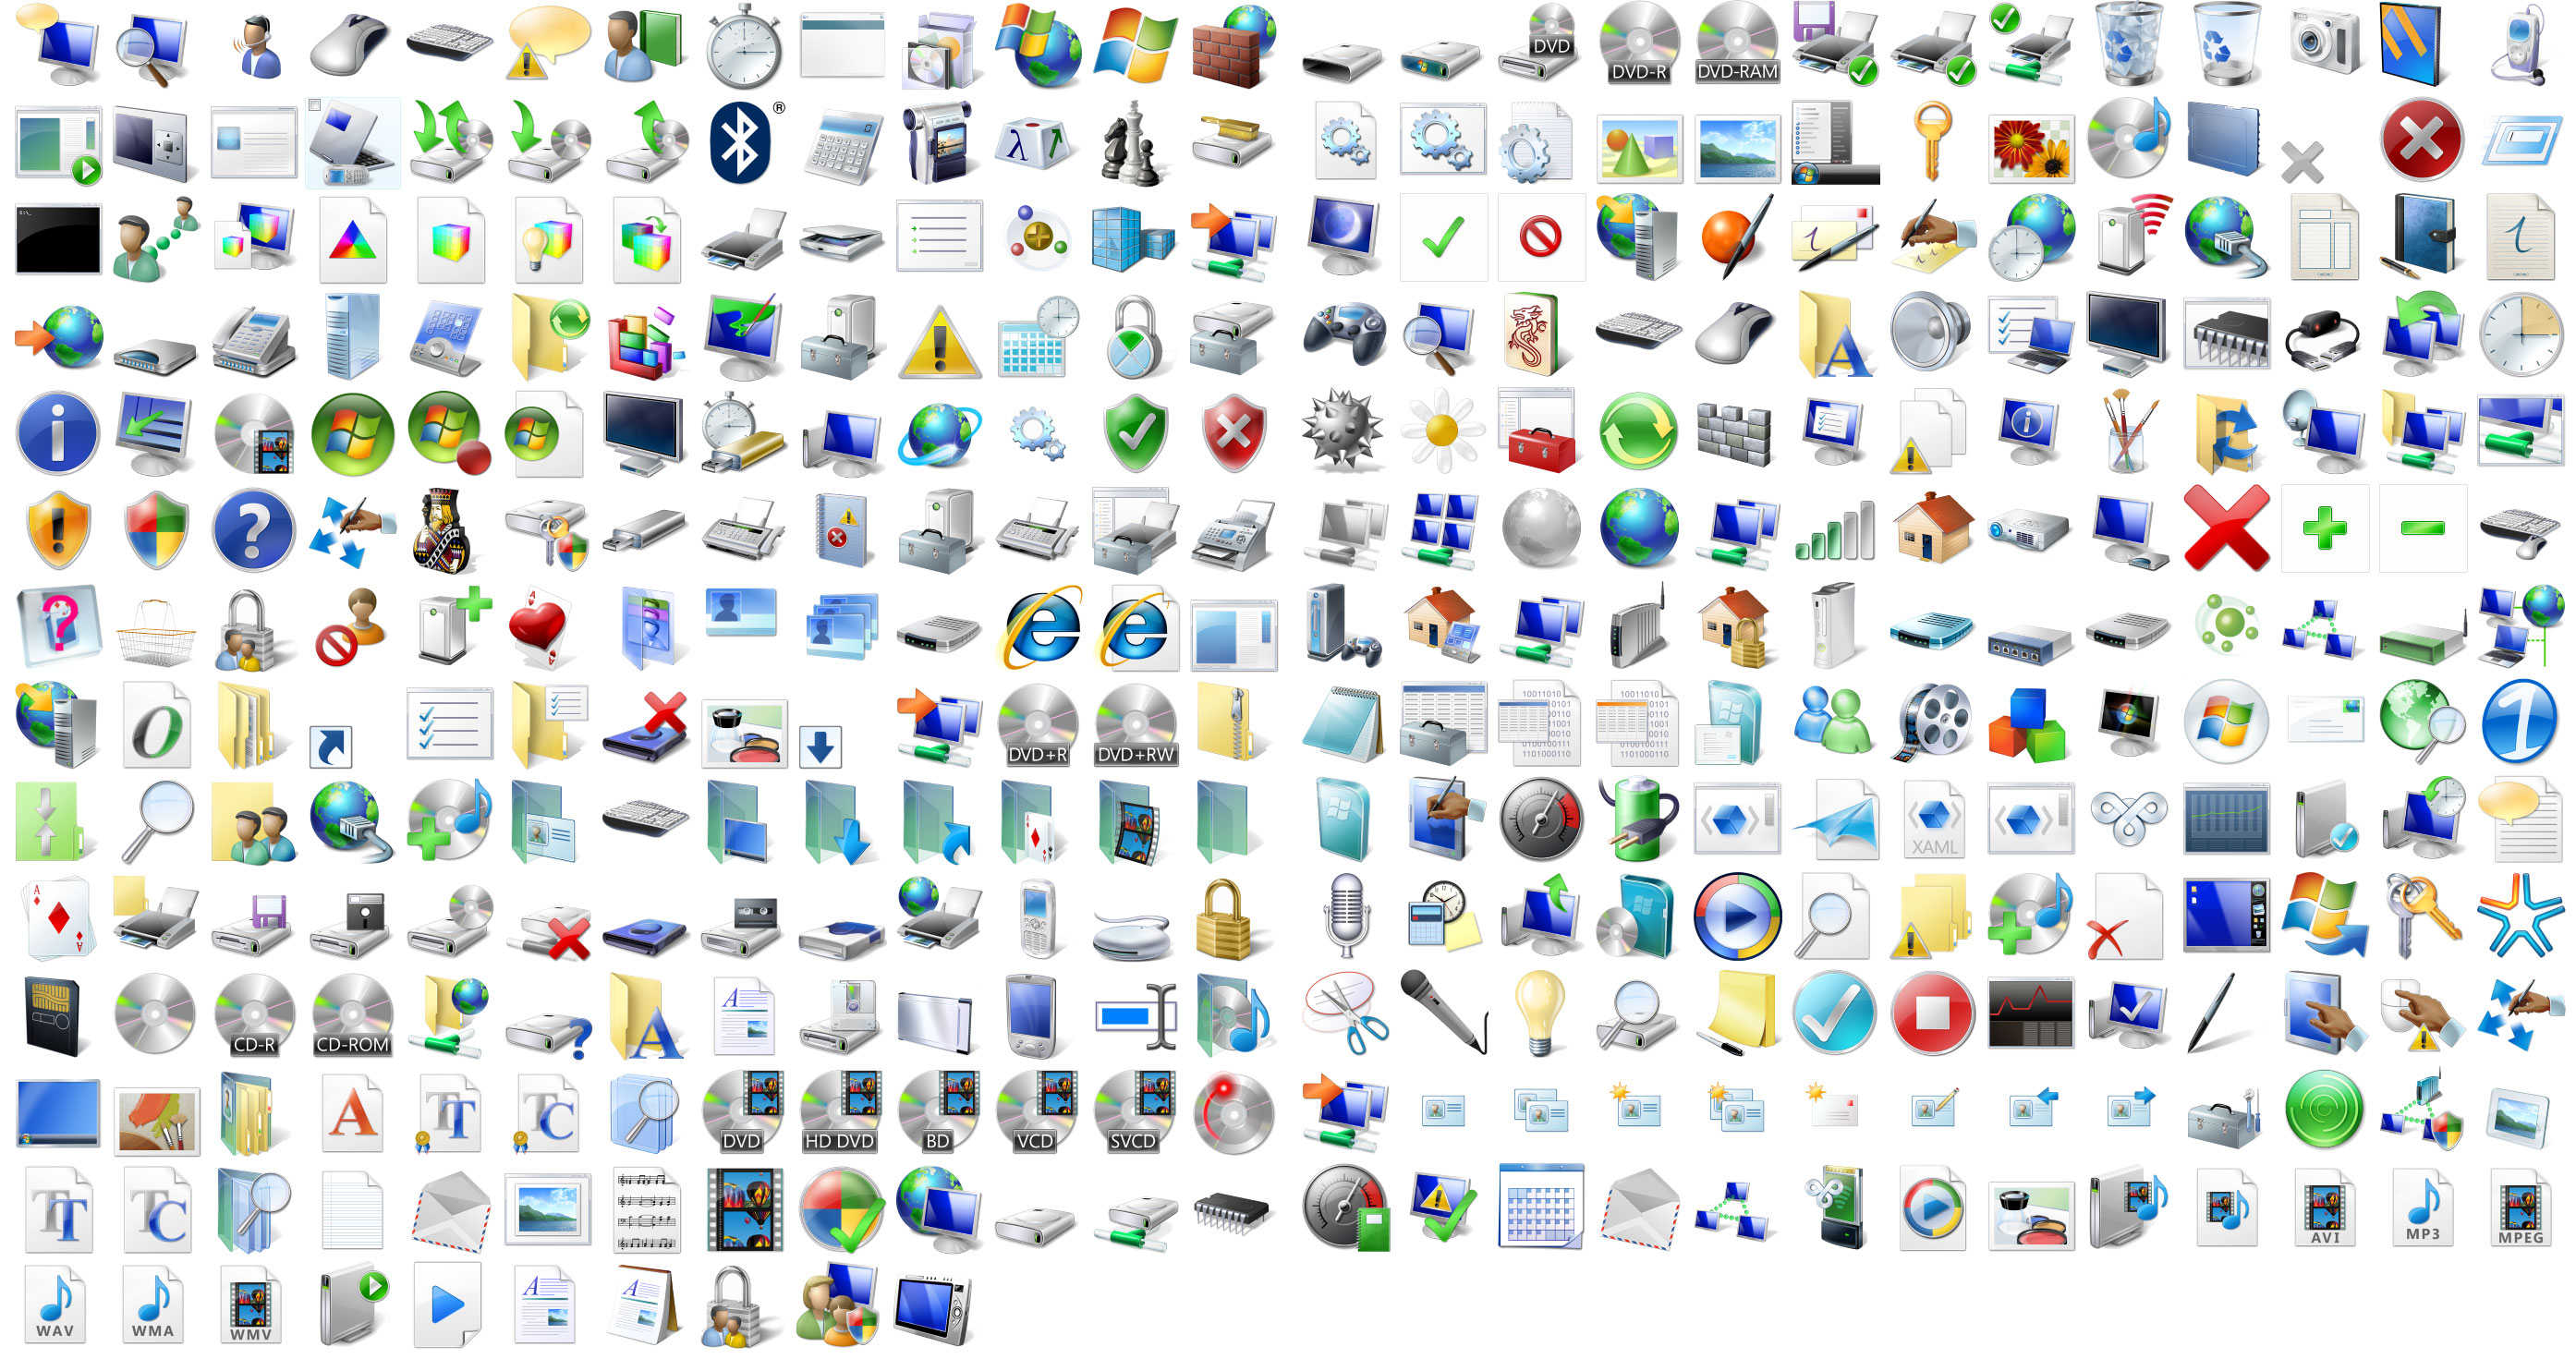 15 Free Microsoft Windows 8 Icons Images